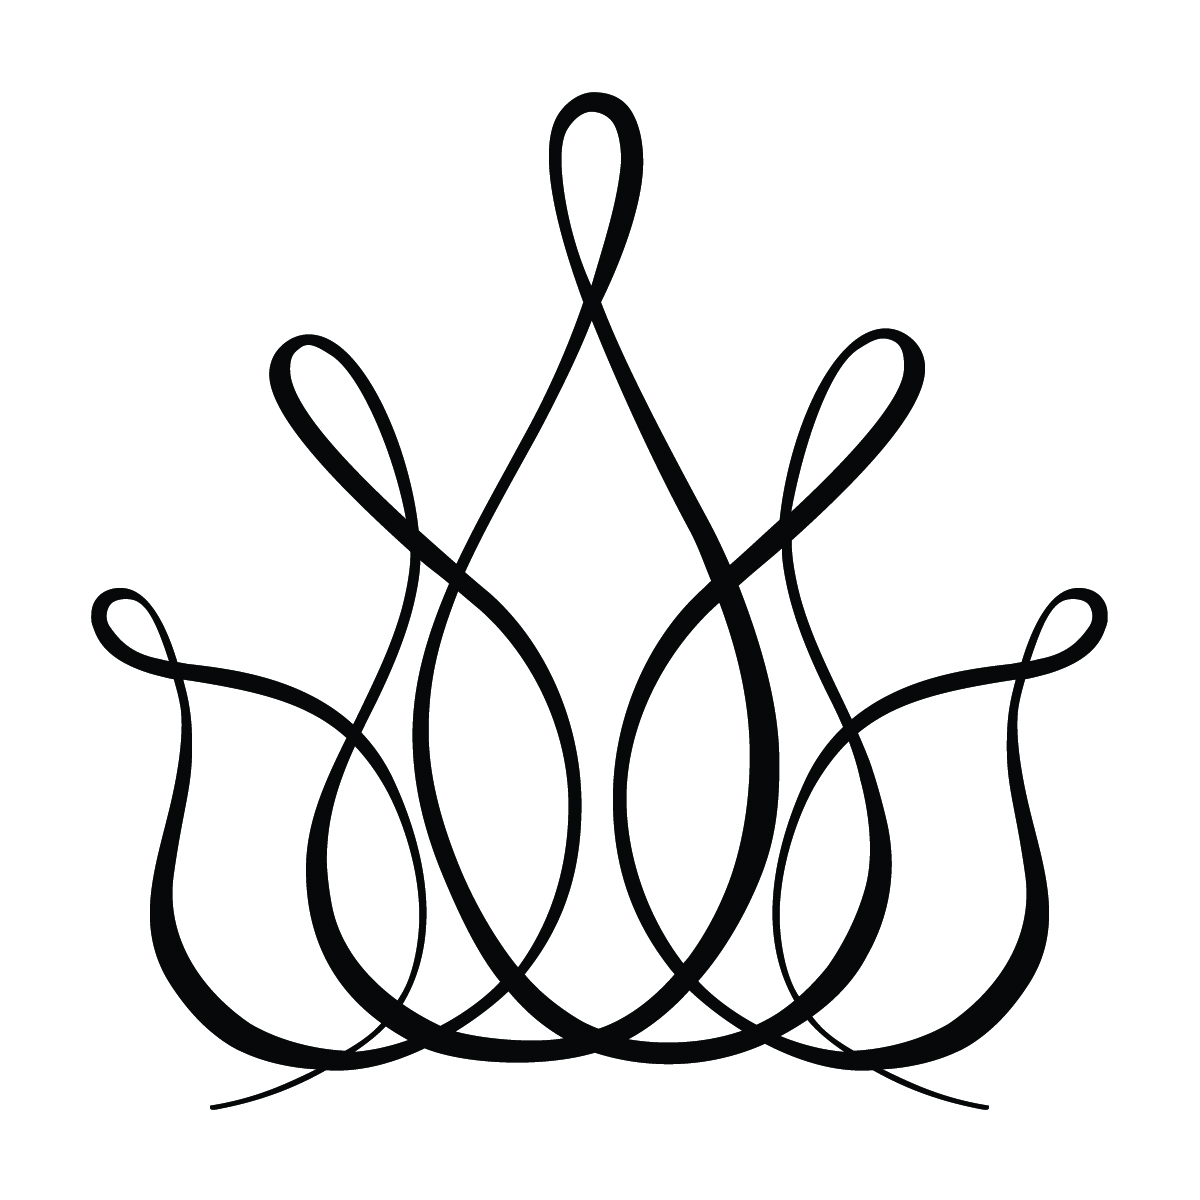 Use the form below to delete this Black And White King Crown Clip.